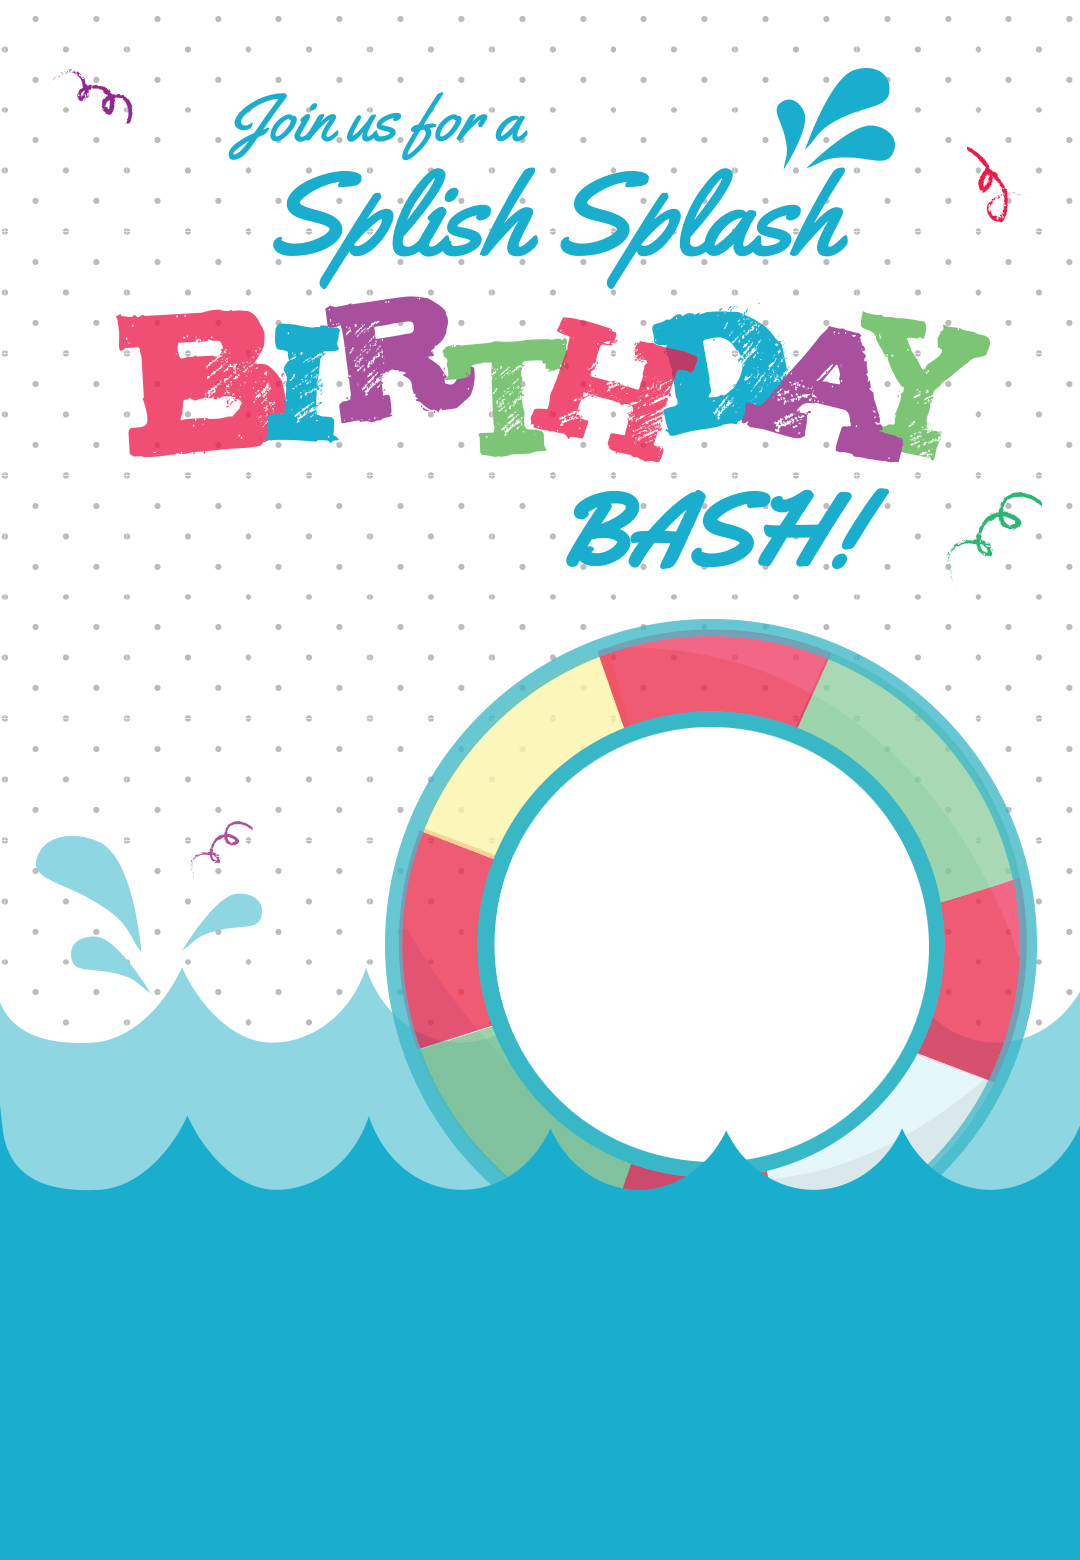 Splish Splash - Pool Party Invitation Template (Free)  Greetings